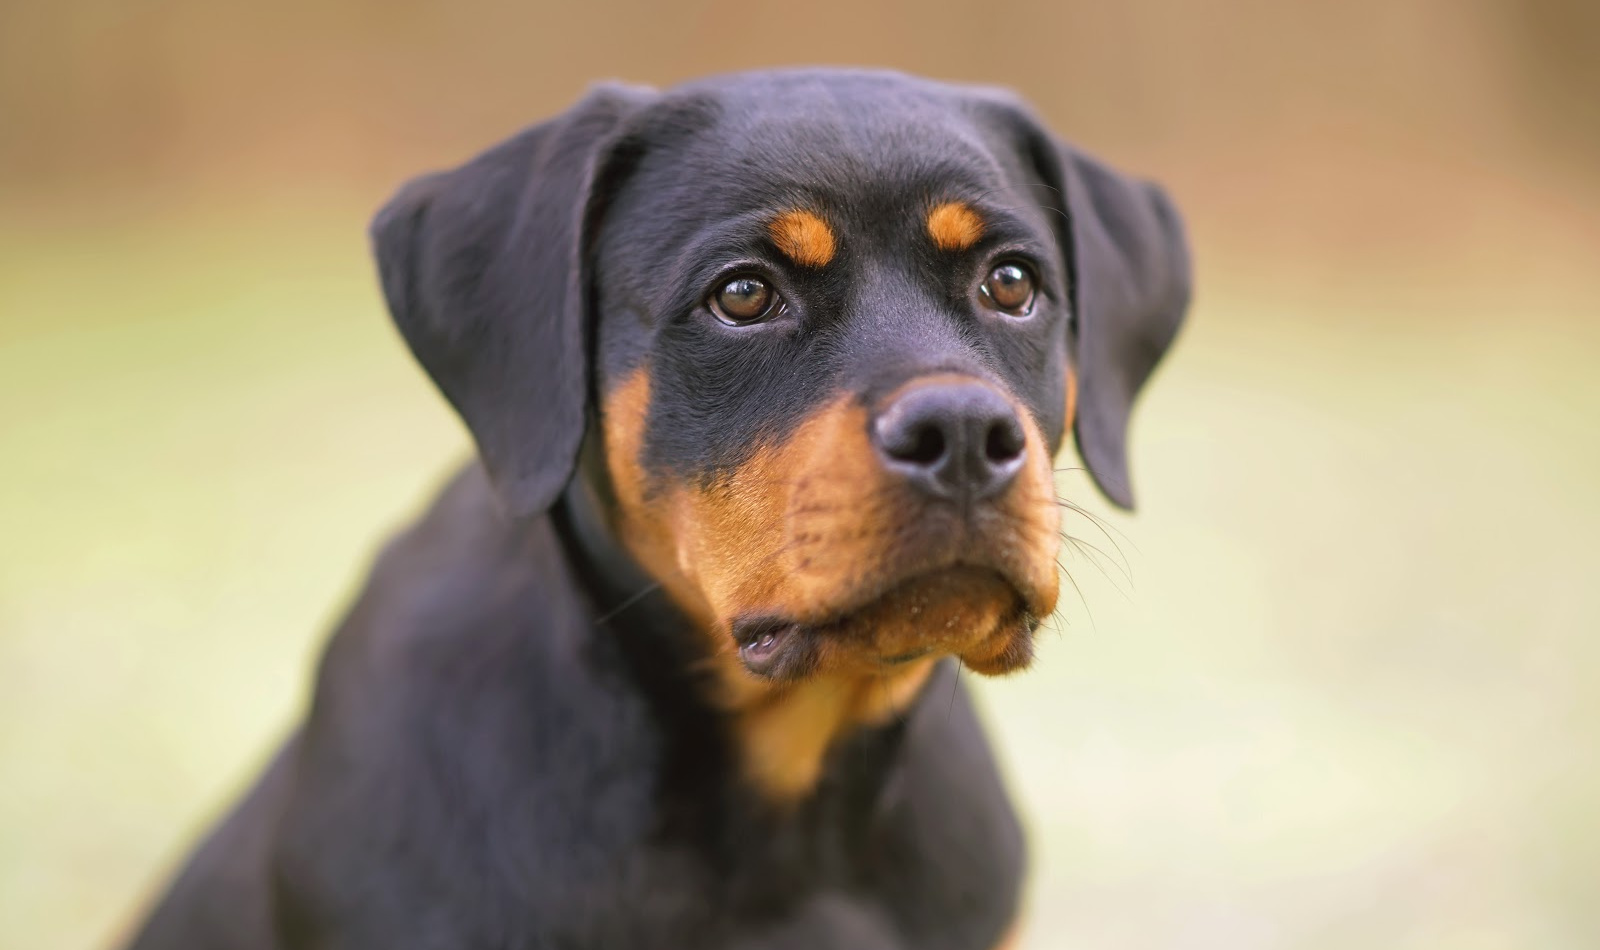 These Rottweiler training commands will help you teach your dogs manners and to look to you for guidance. Try them out today!